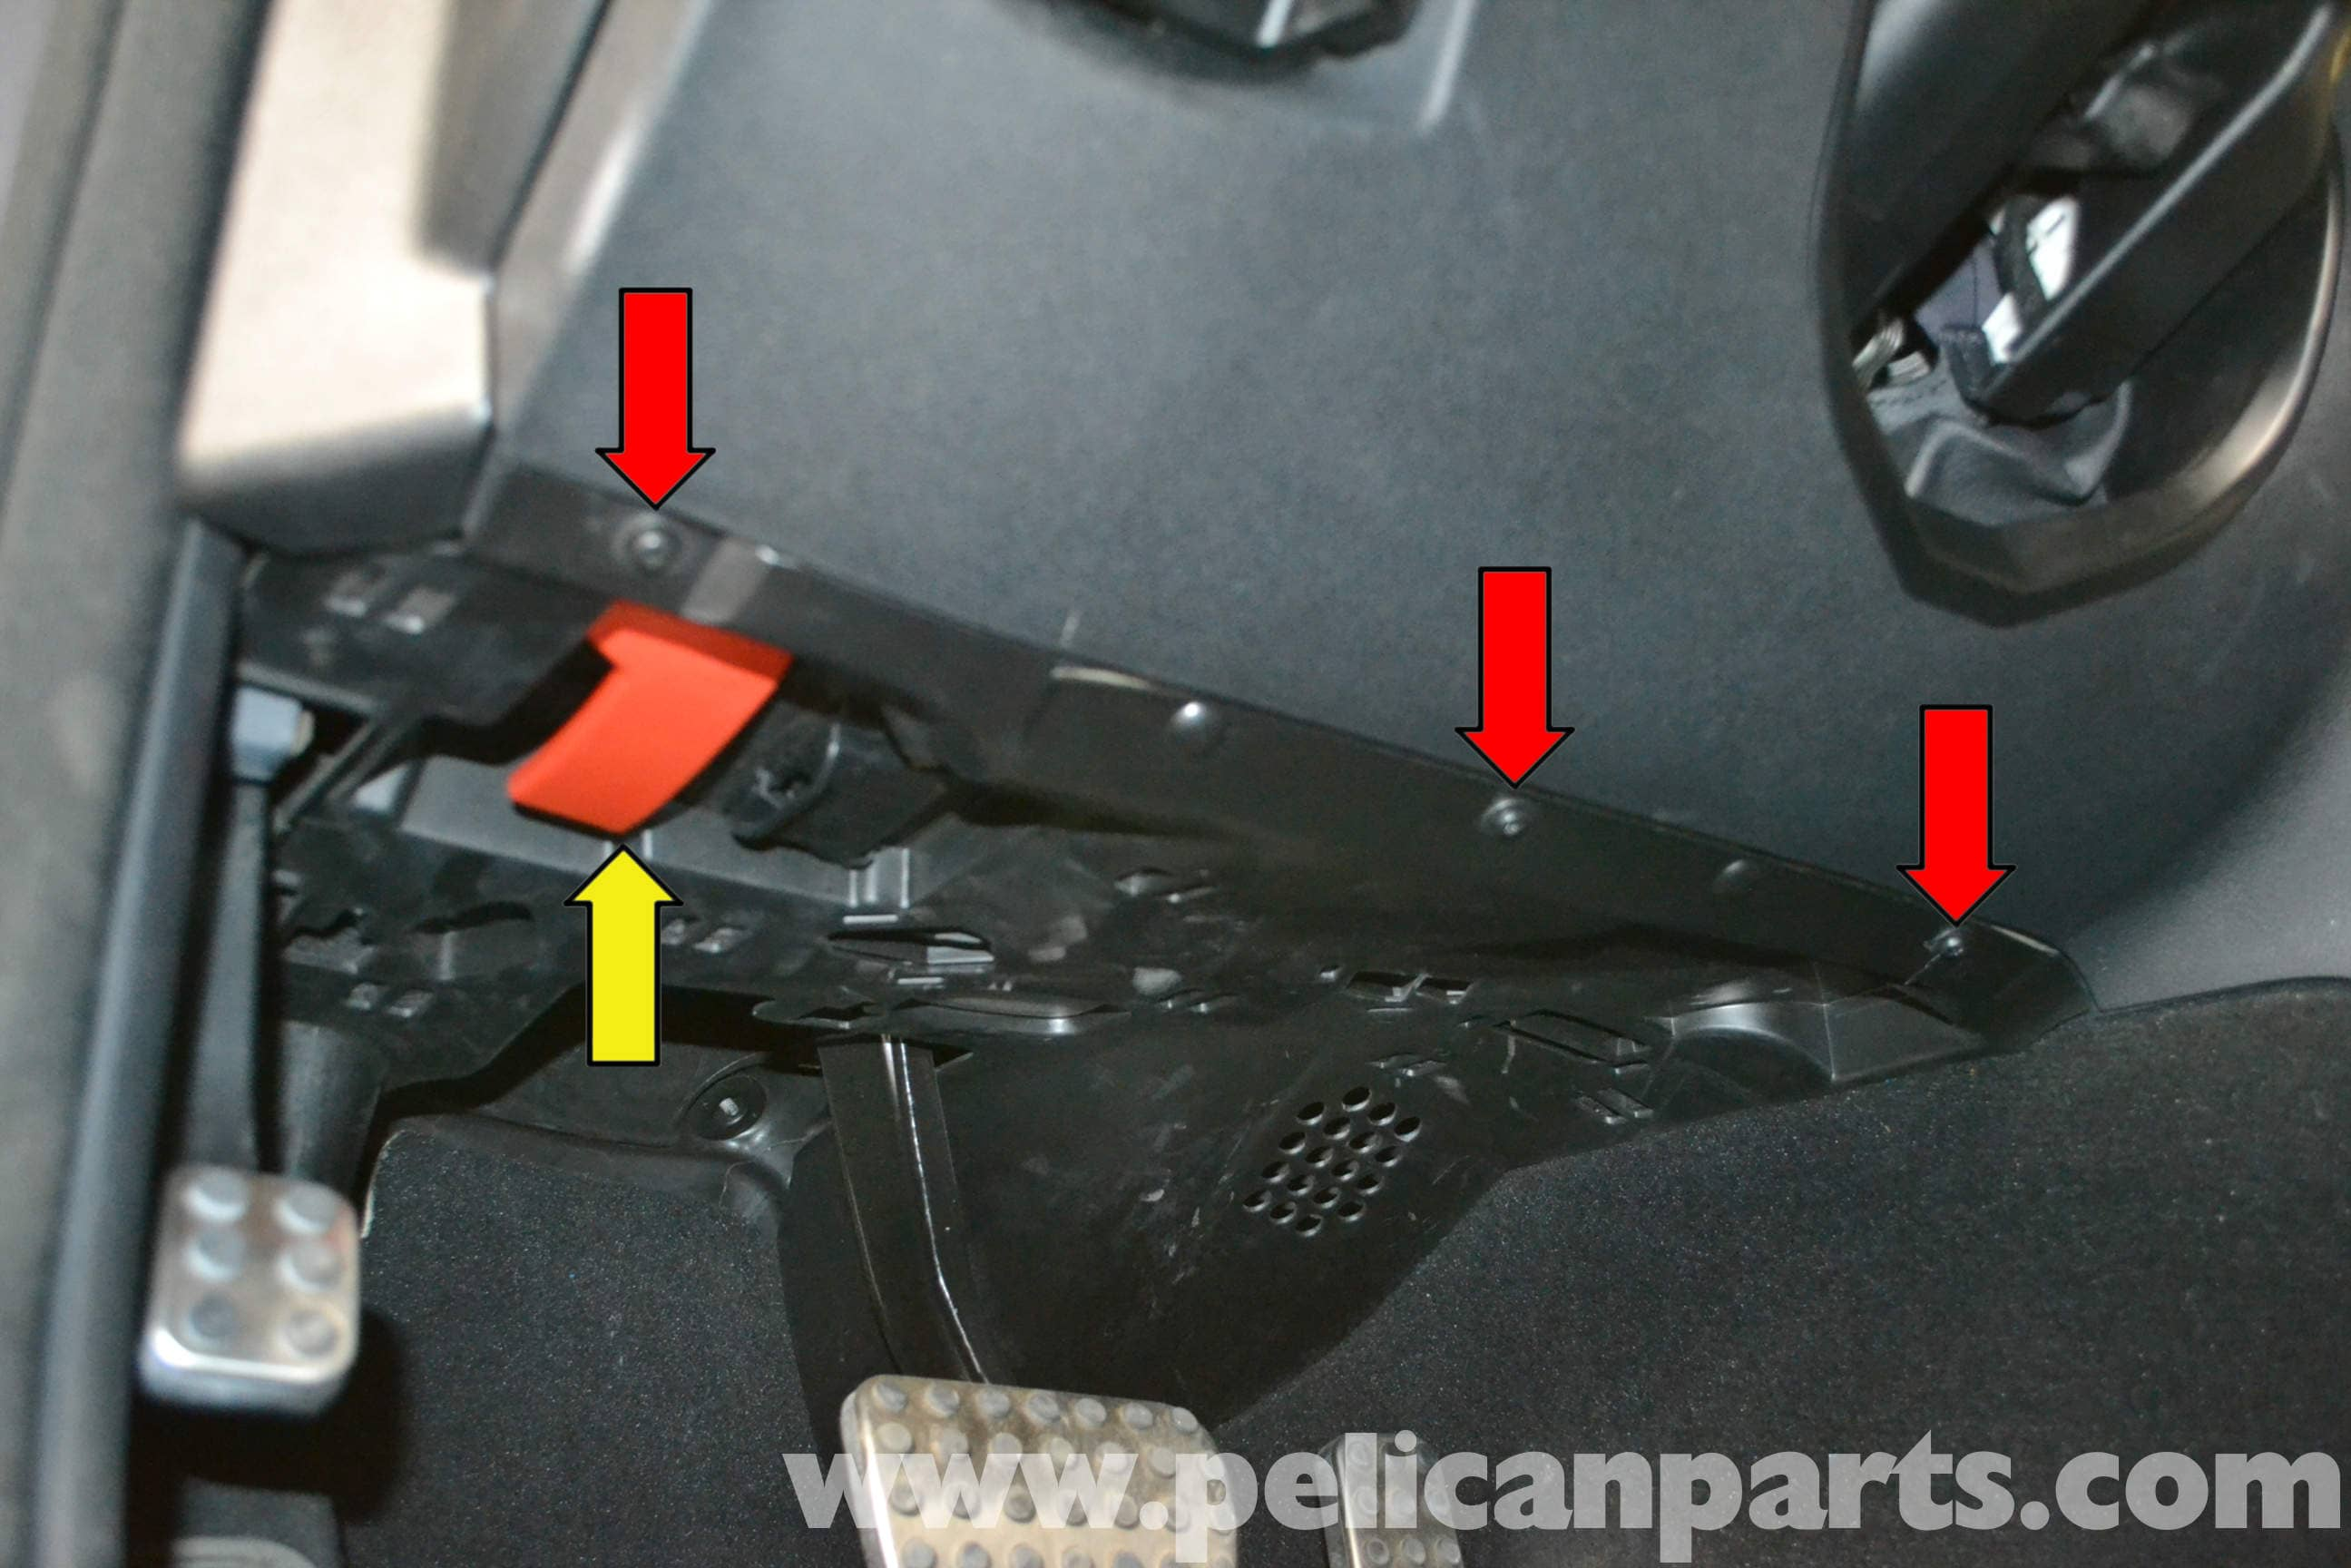 Mercedes-benz W204 Brake Light Switch Replacement